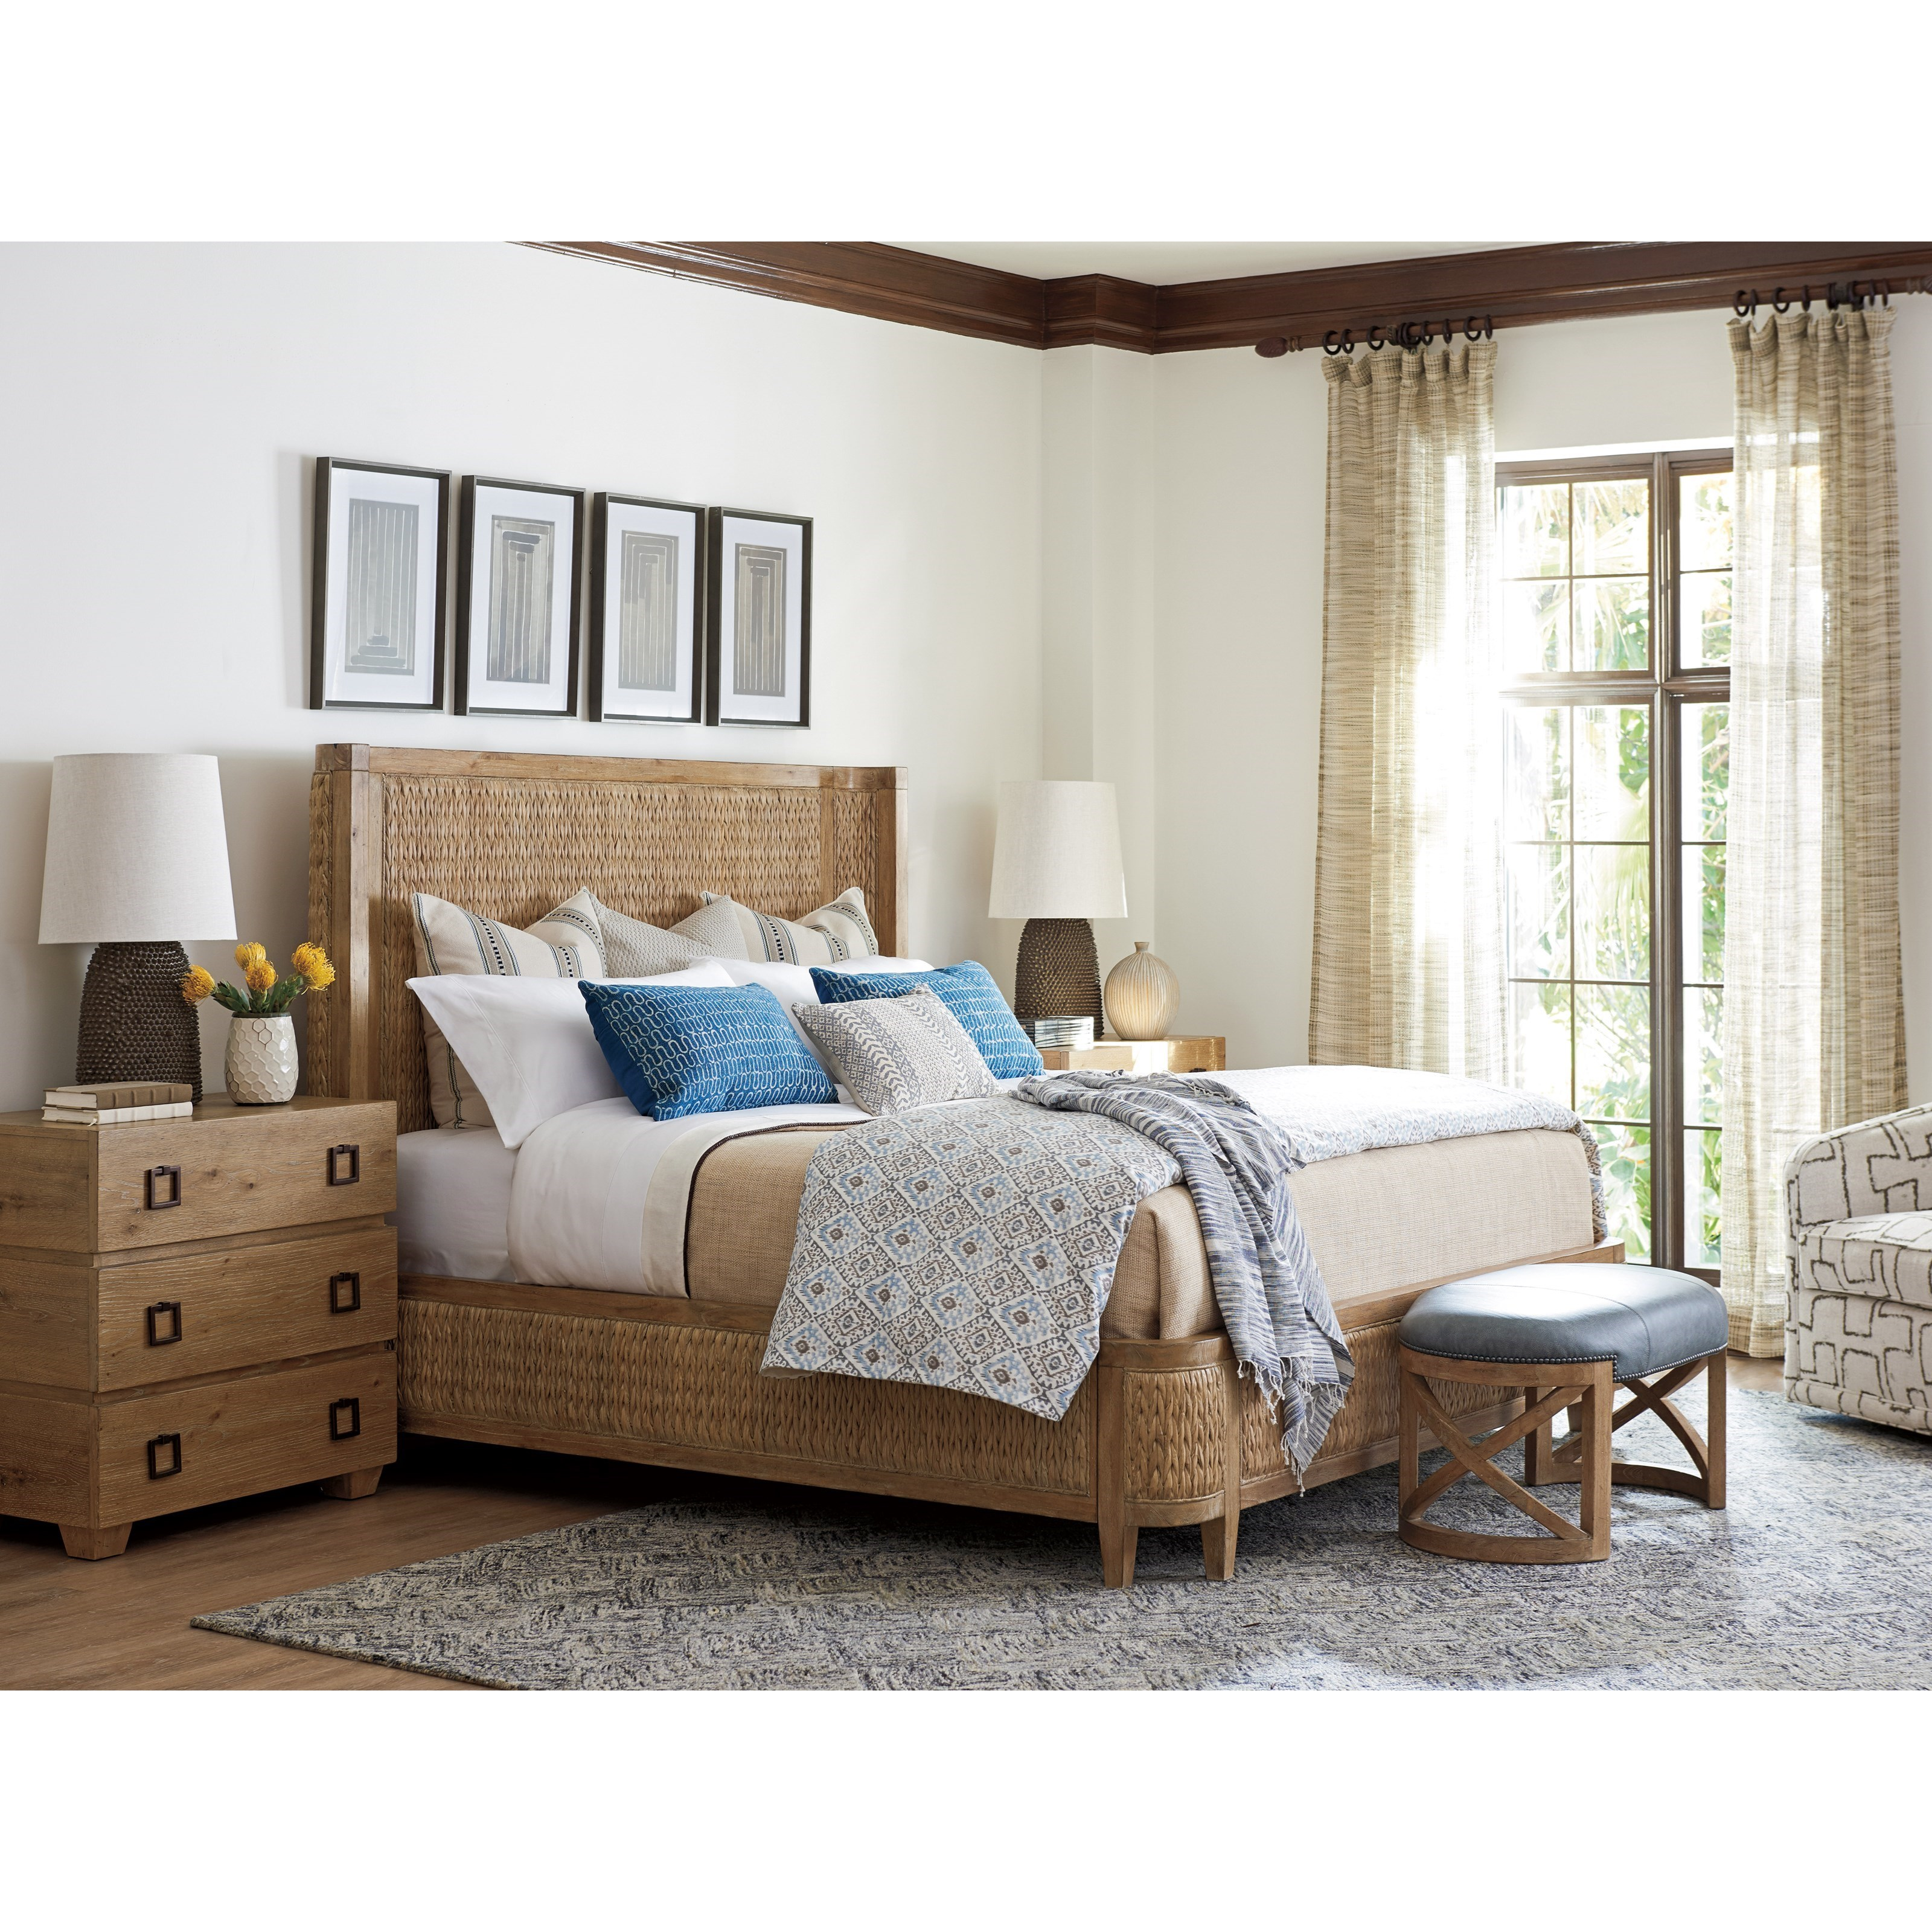 Los Altos King Bedroom Group by Tommy Bahama Home at Stuckey Furniture